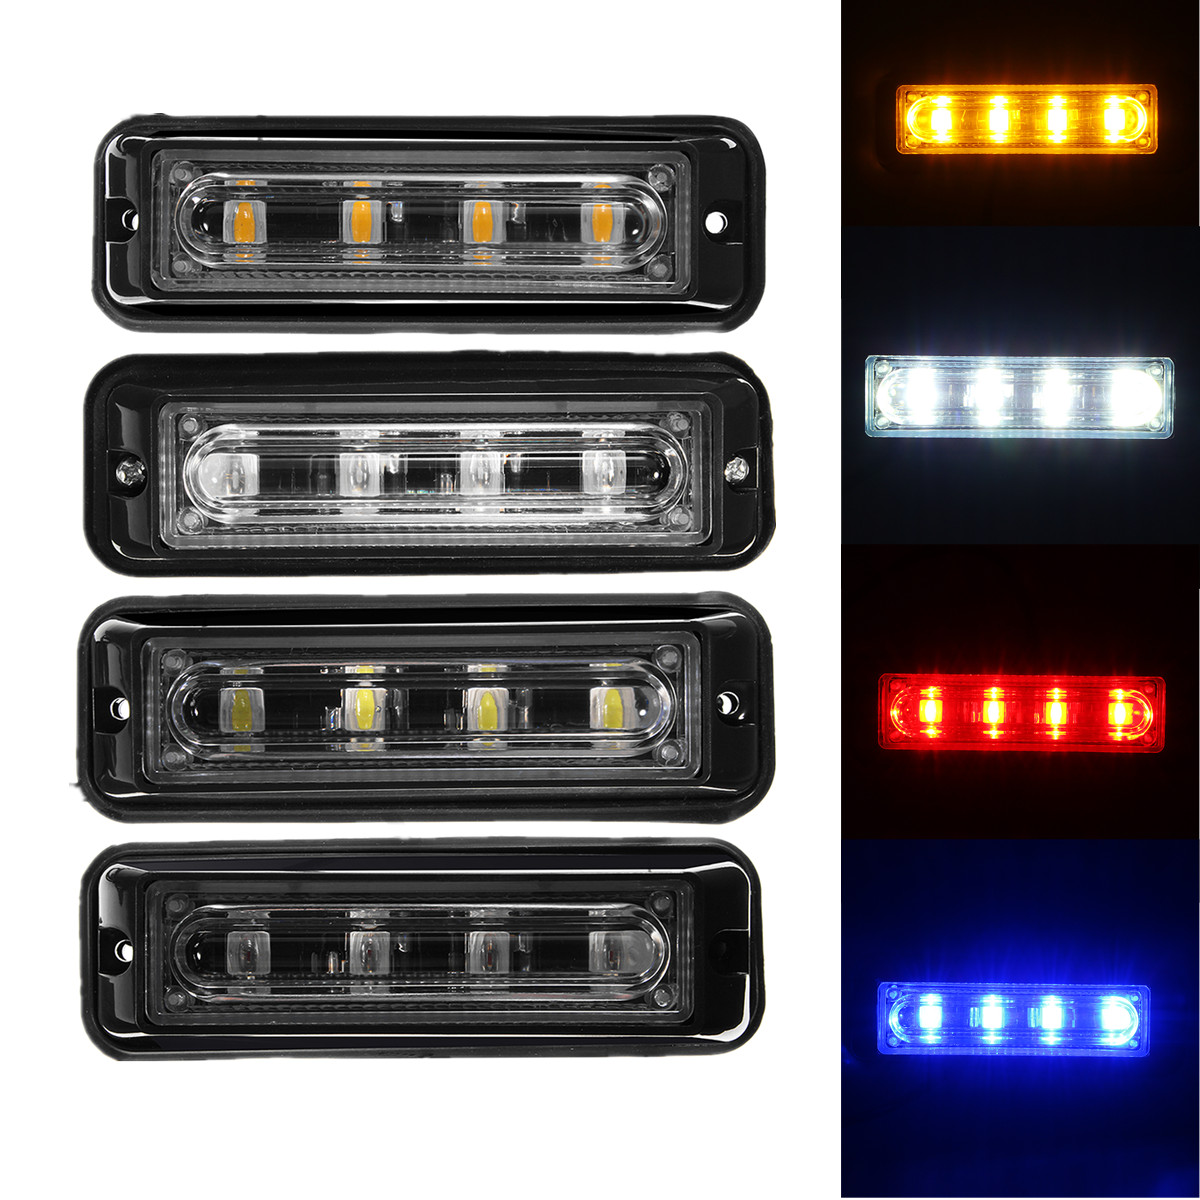 Discount 1pcs 4 Leds Truck Car Suv Emergency Flashlight Warning How To Build High Intensity Led Flasher Strobe Flash Lights Day Light Red